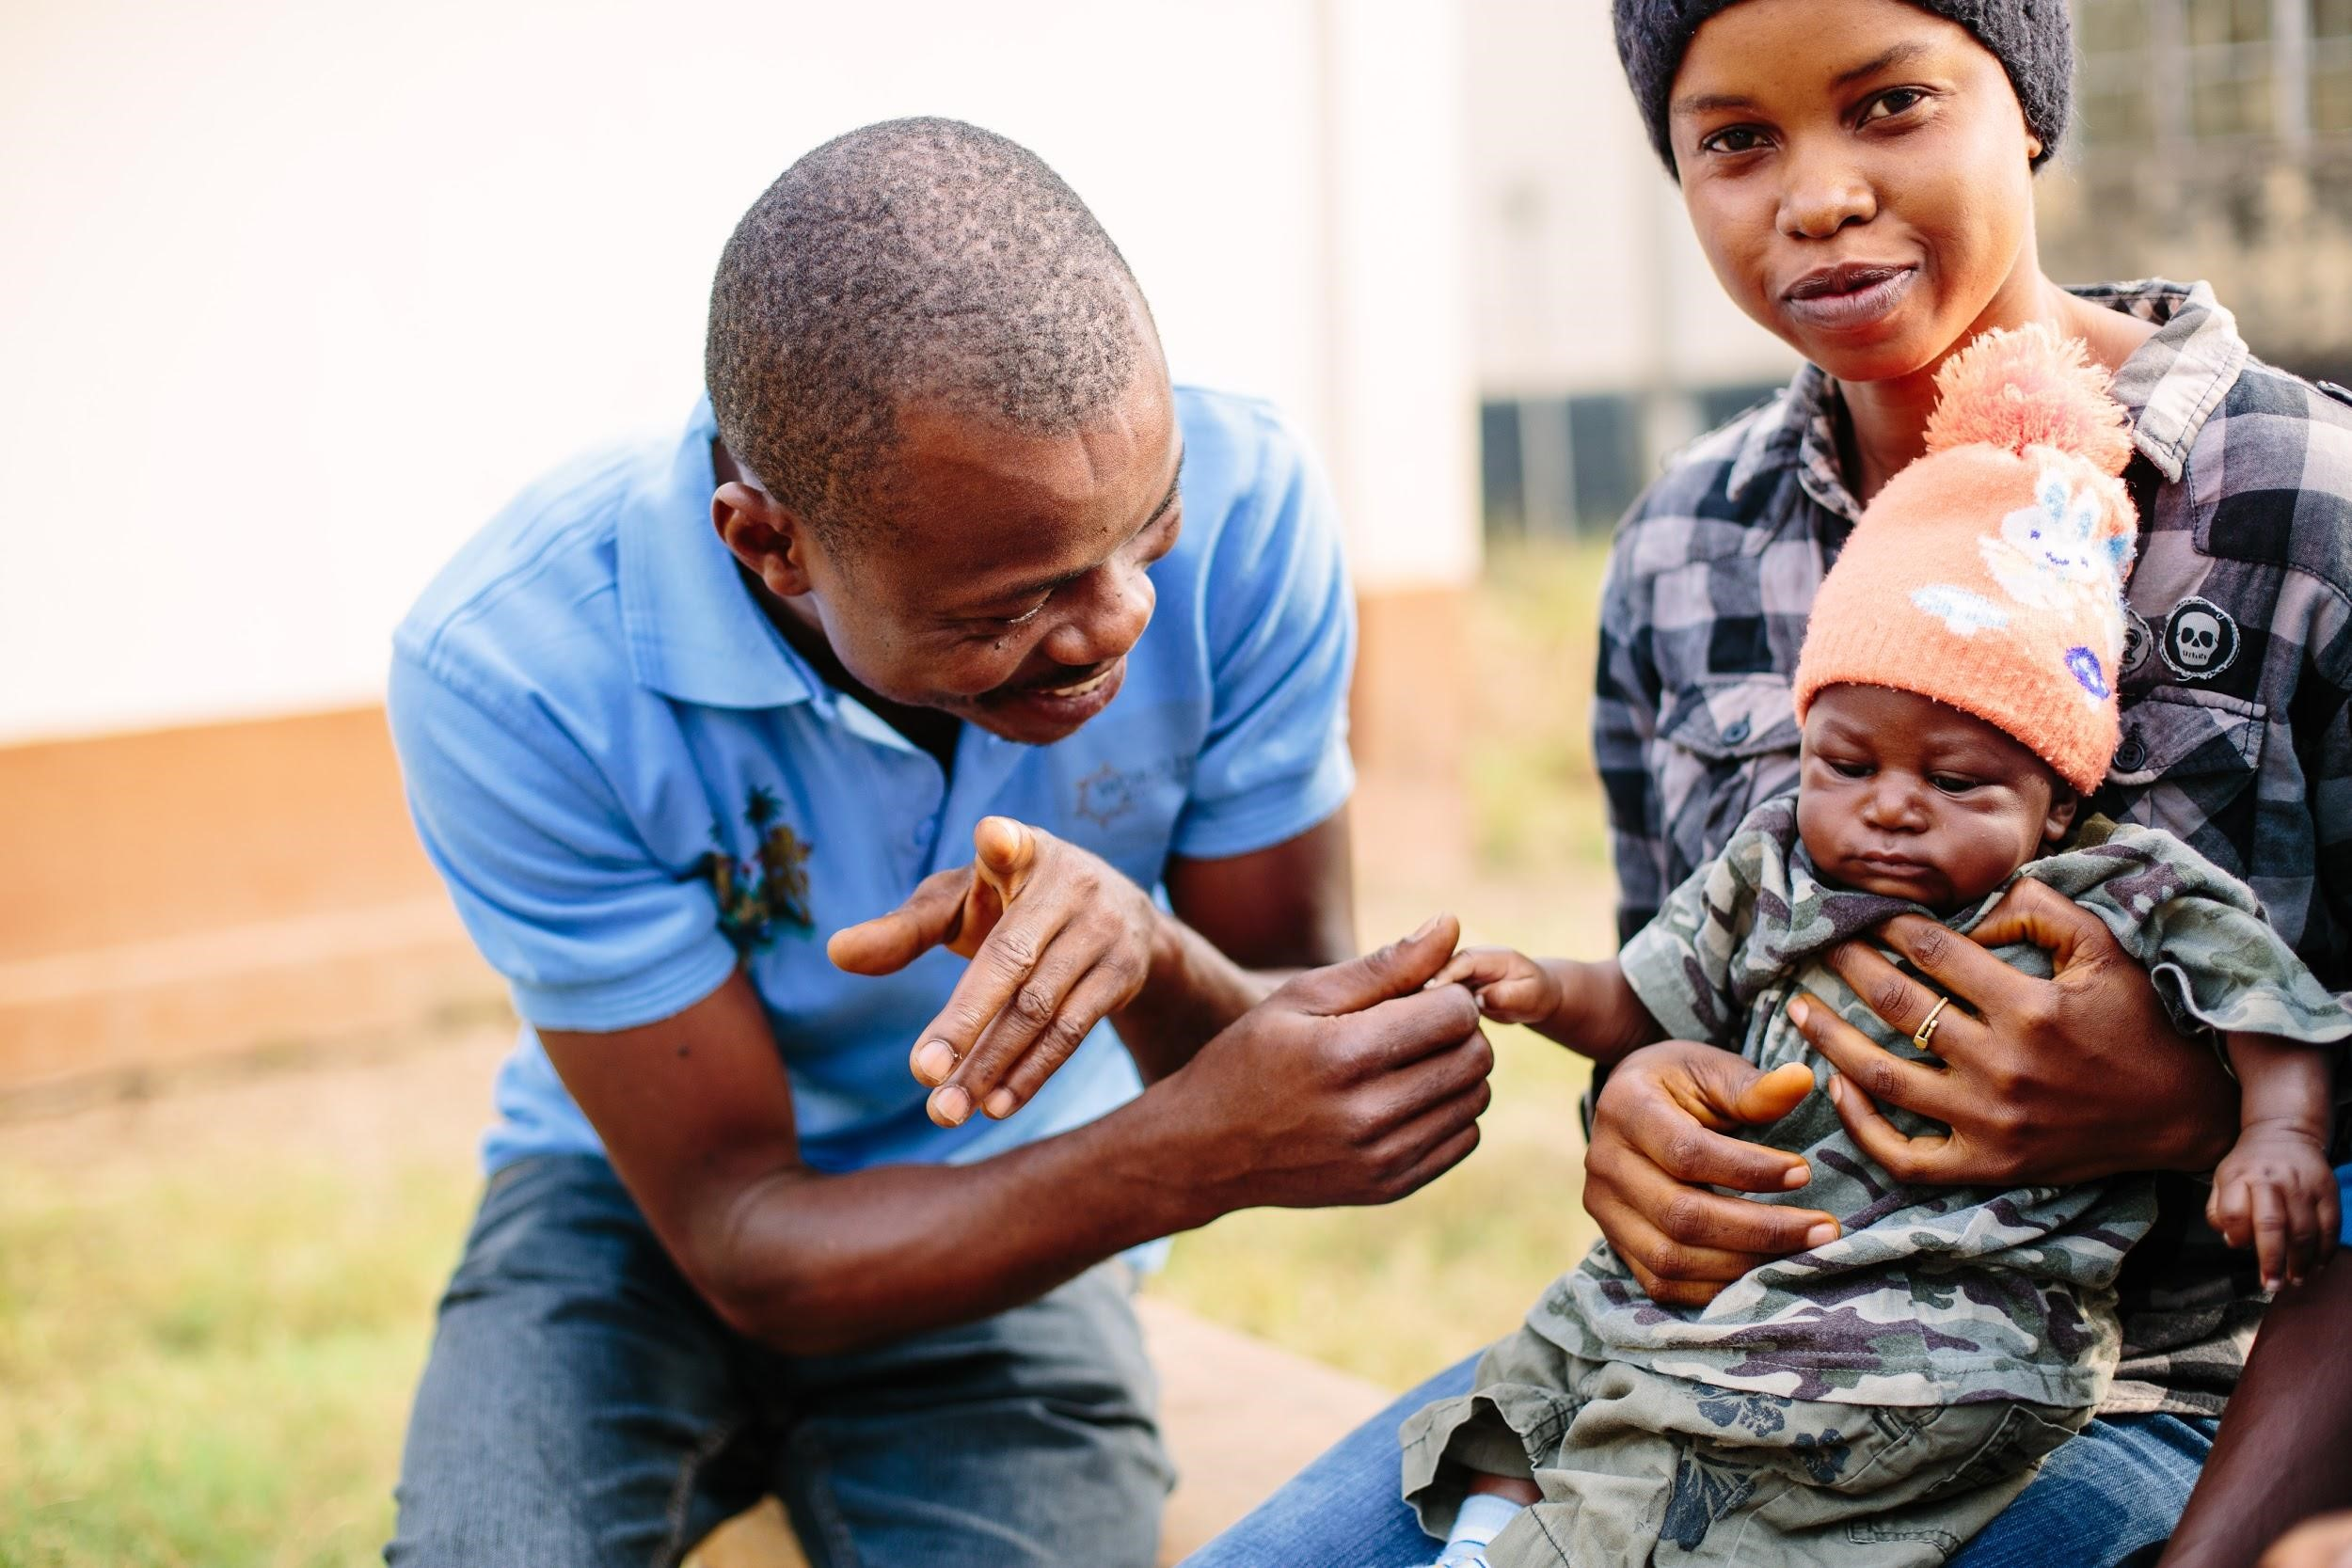 A male health worker smiles at an infant being held by his mother.